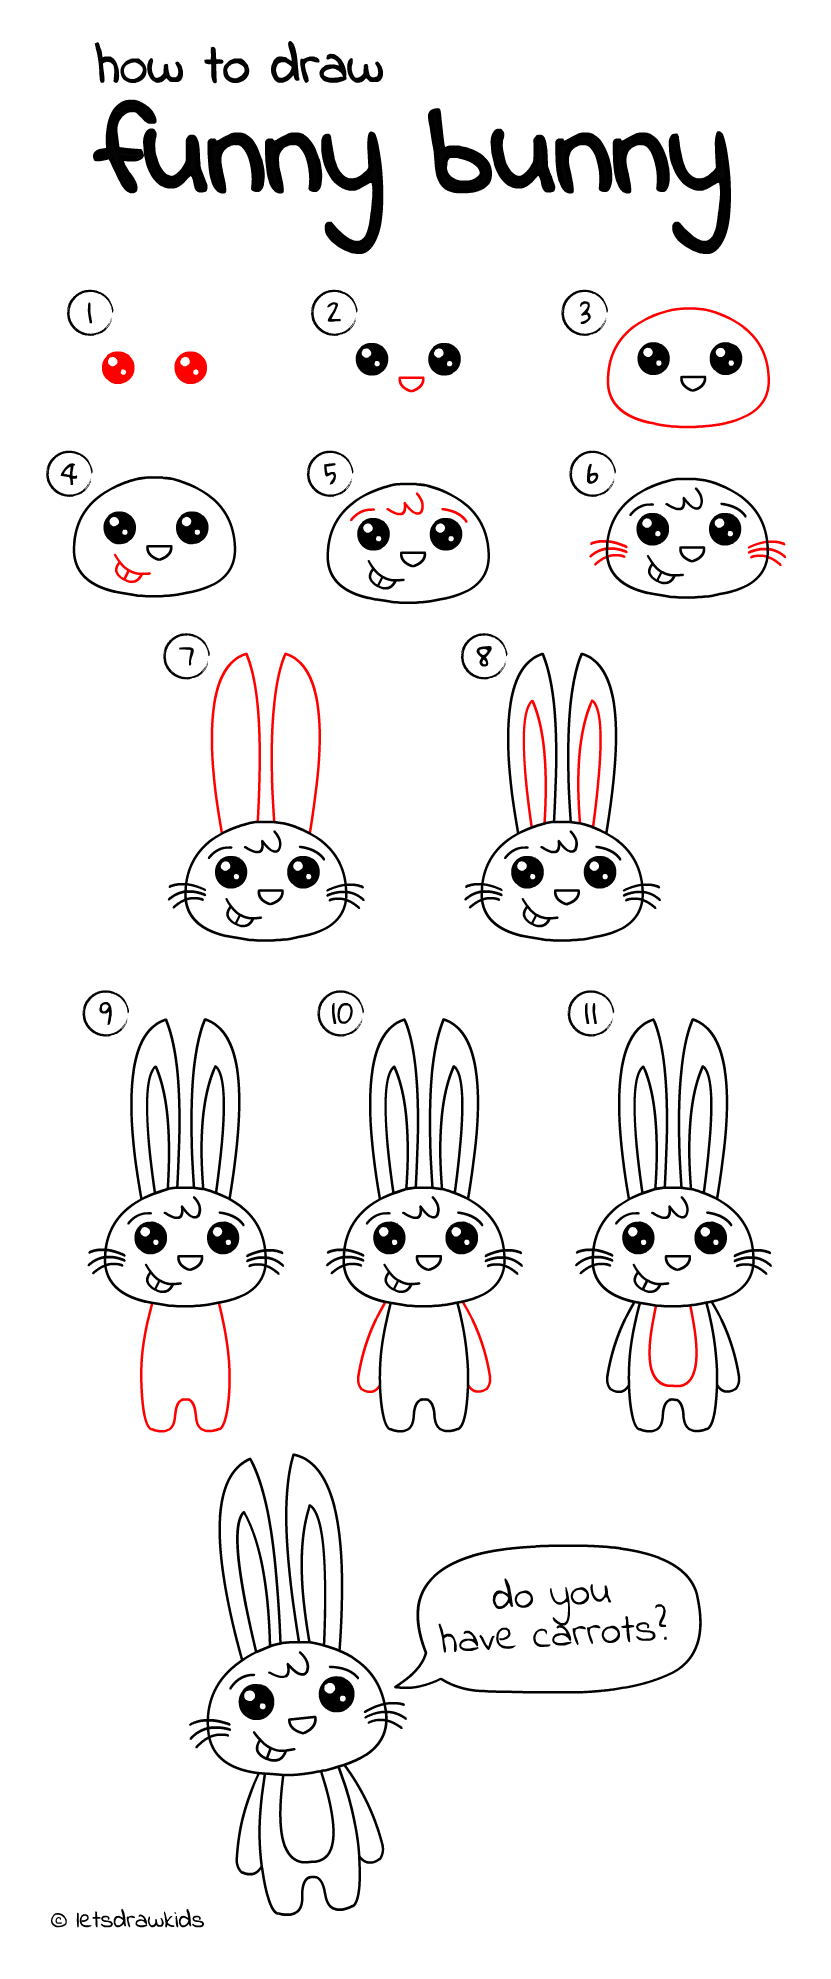 How to draw funny bunny easy drawing step by step for Funny simple drawings